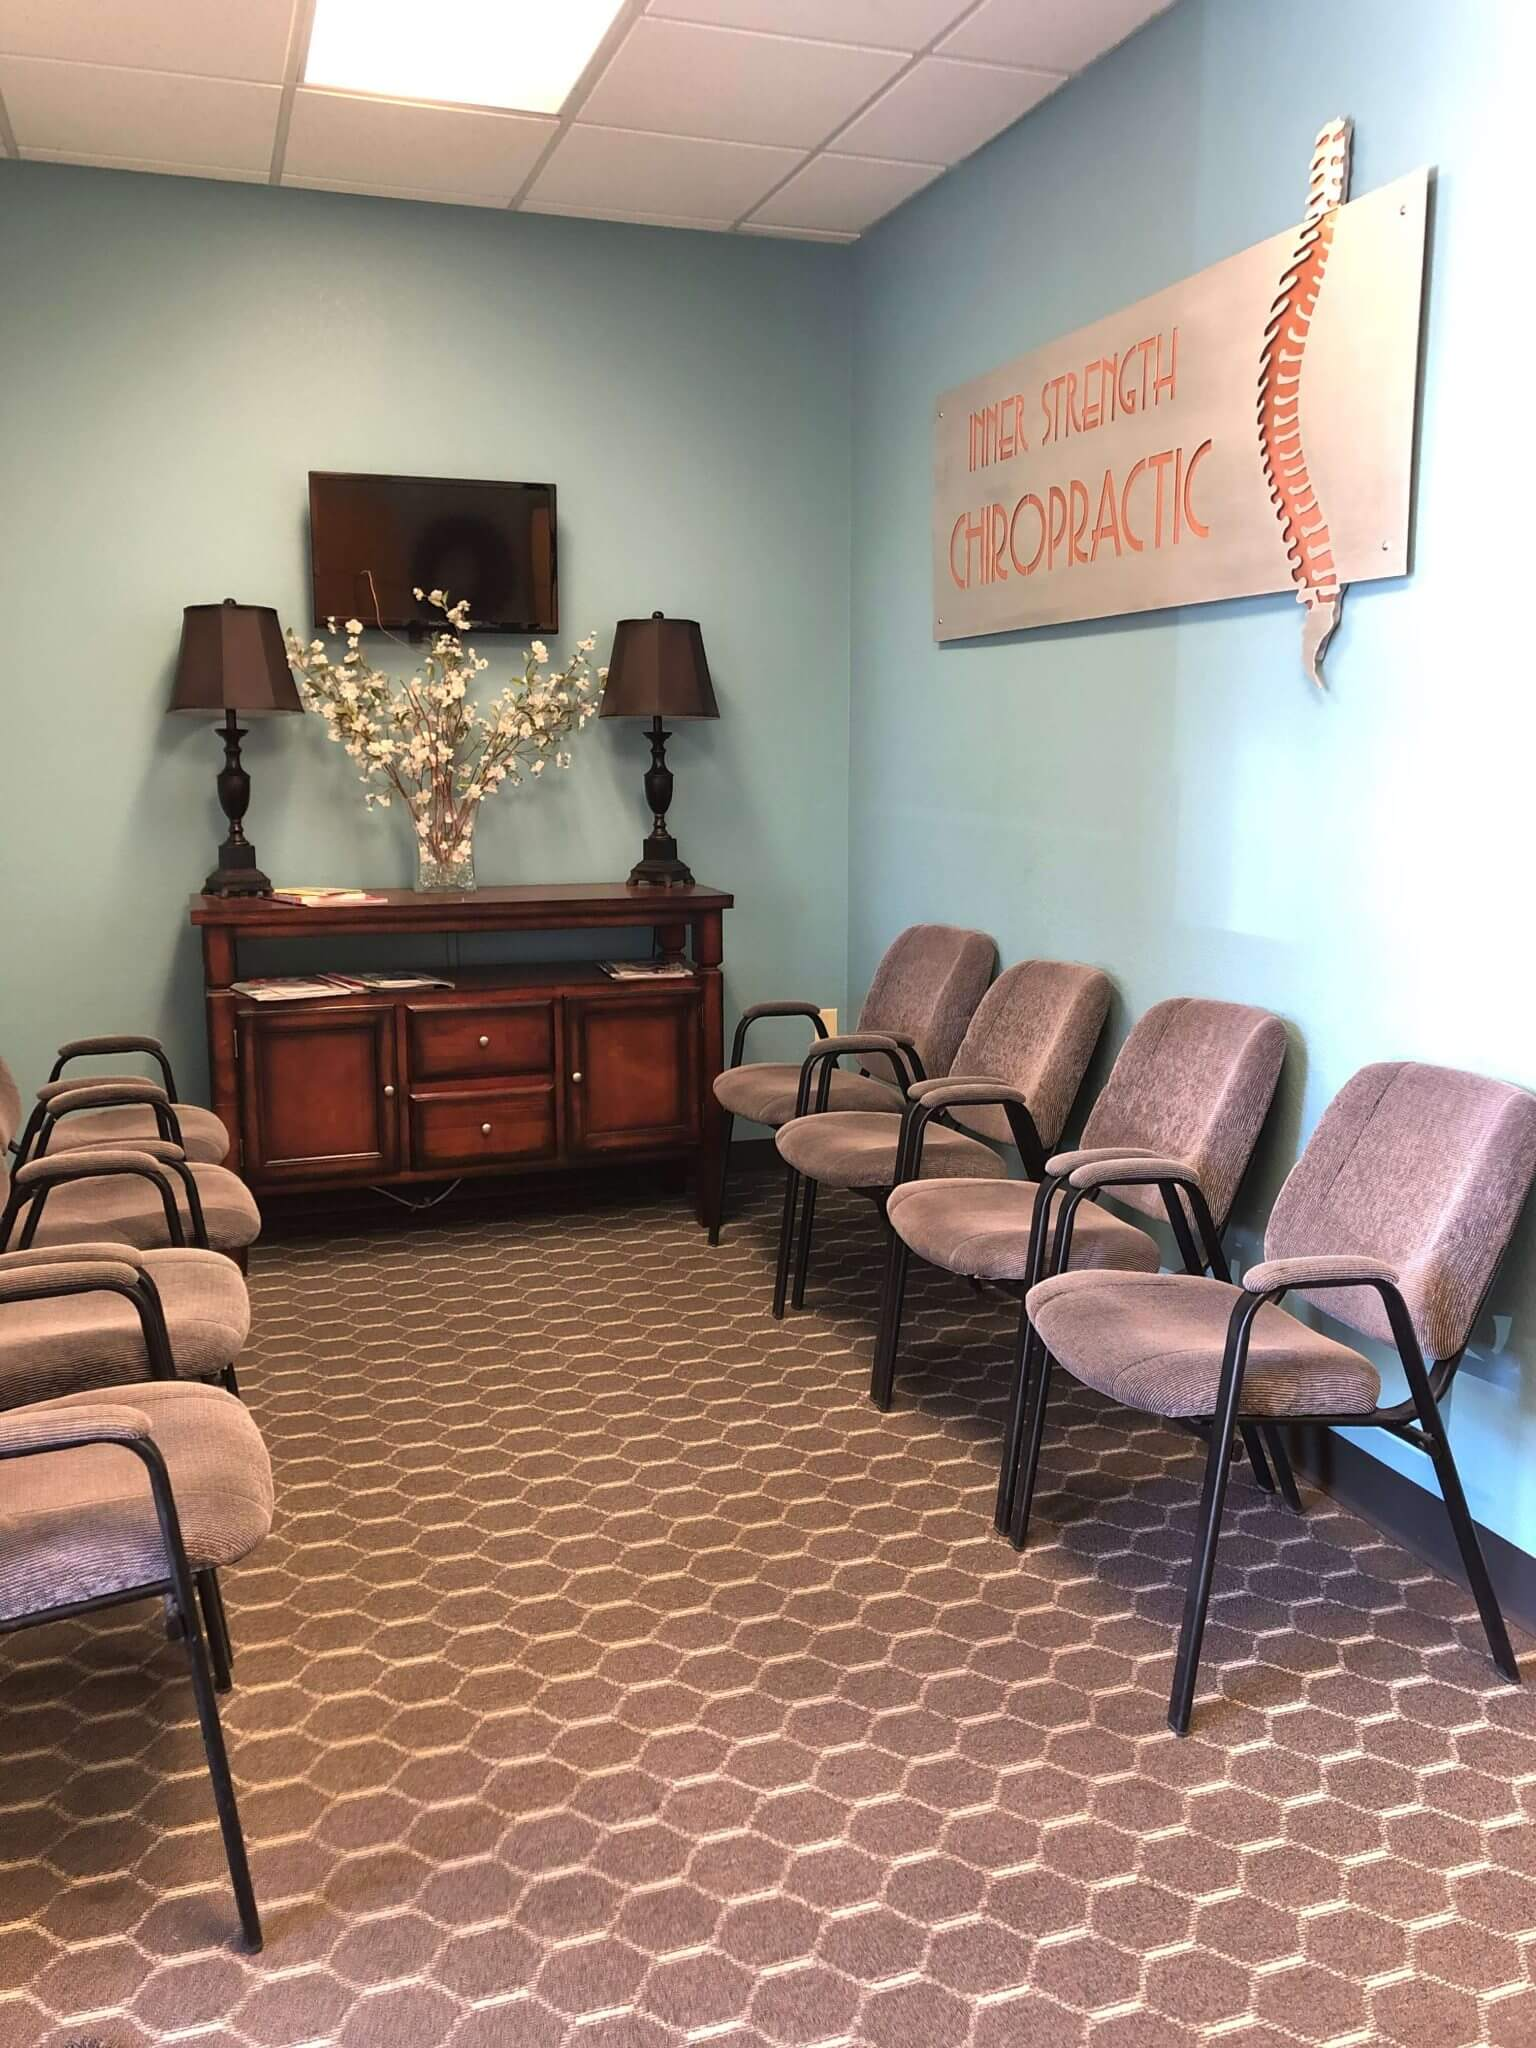 Inner Strength Chiropractic office